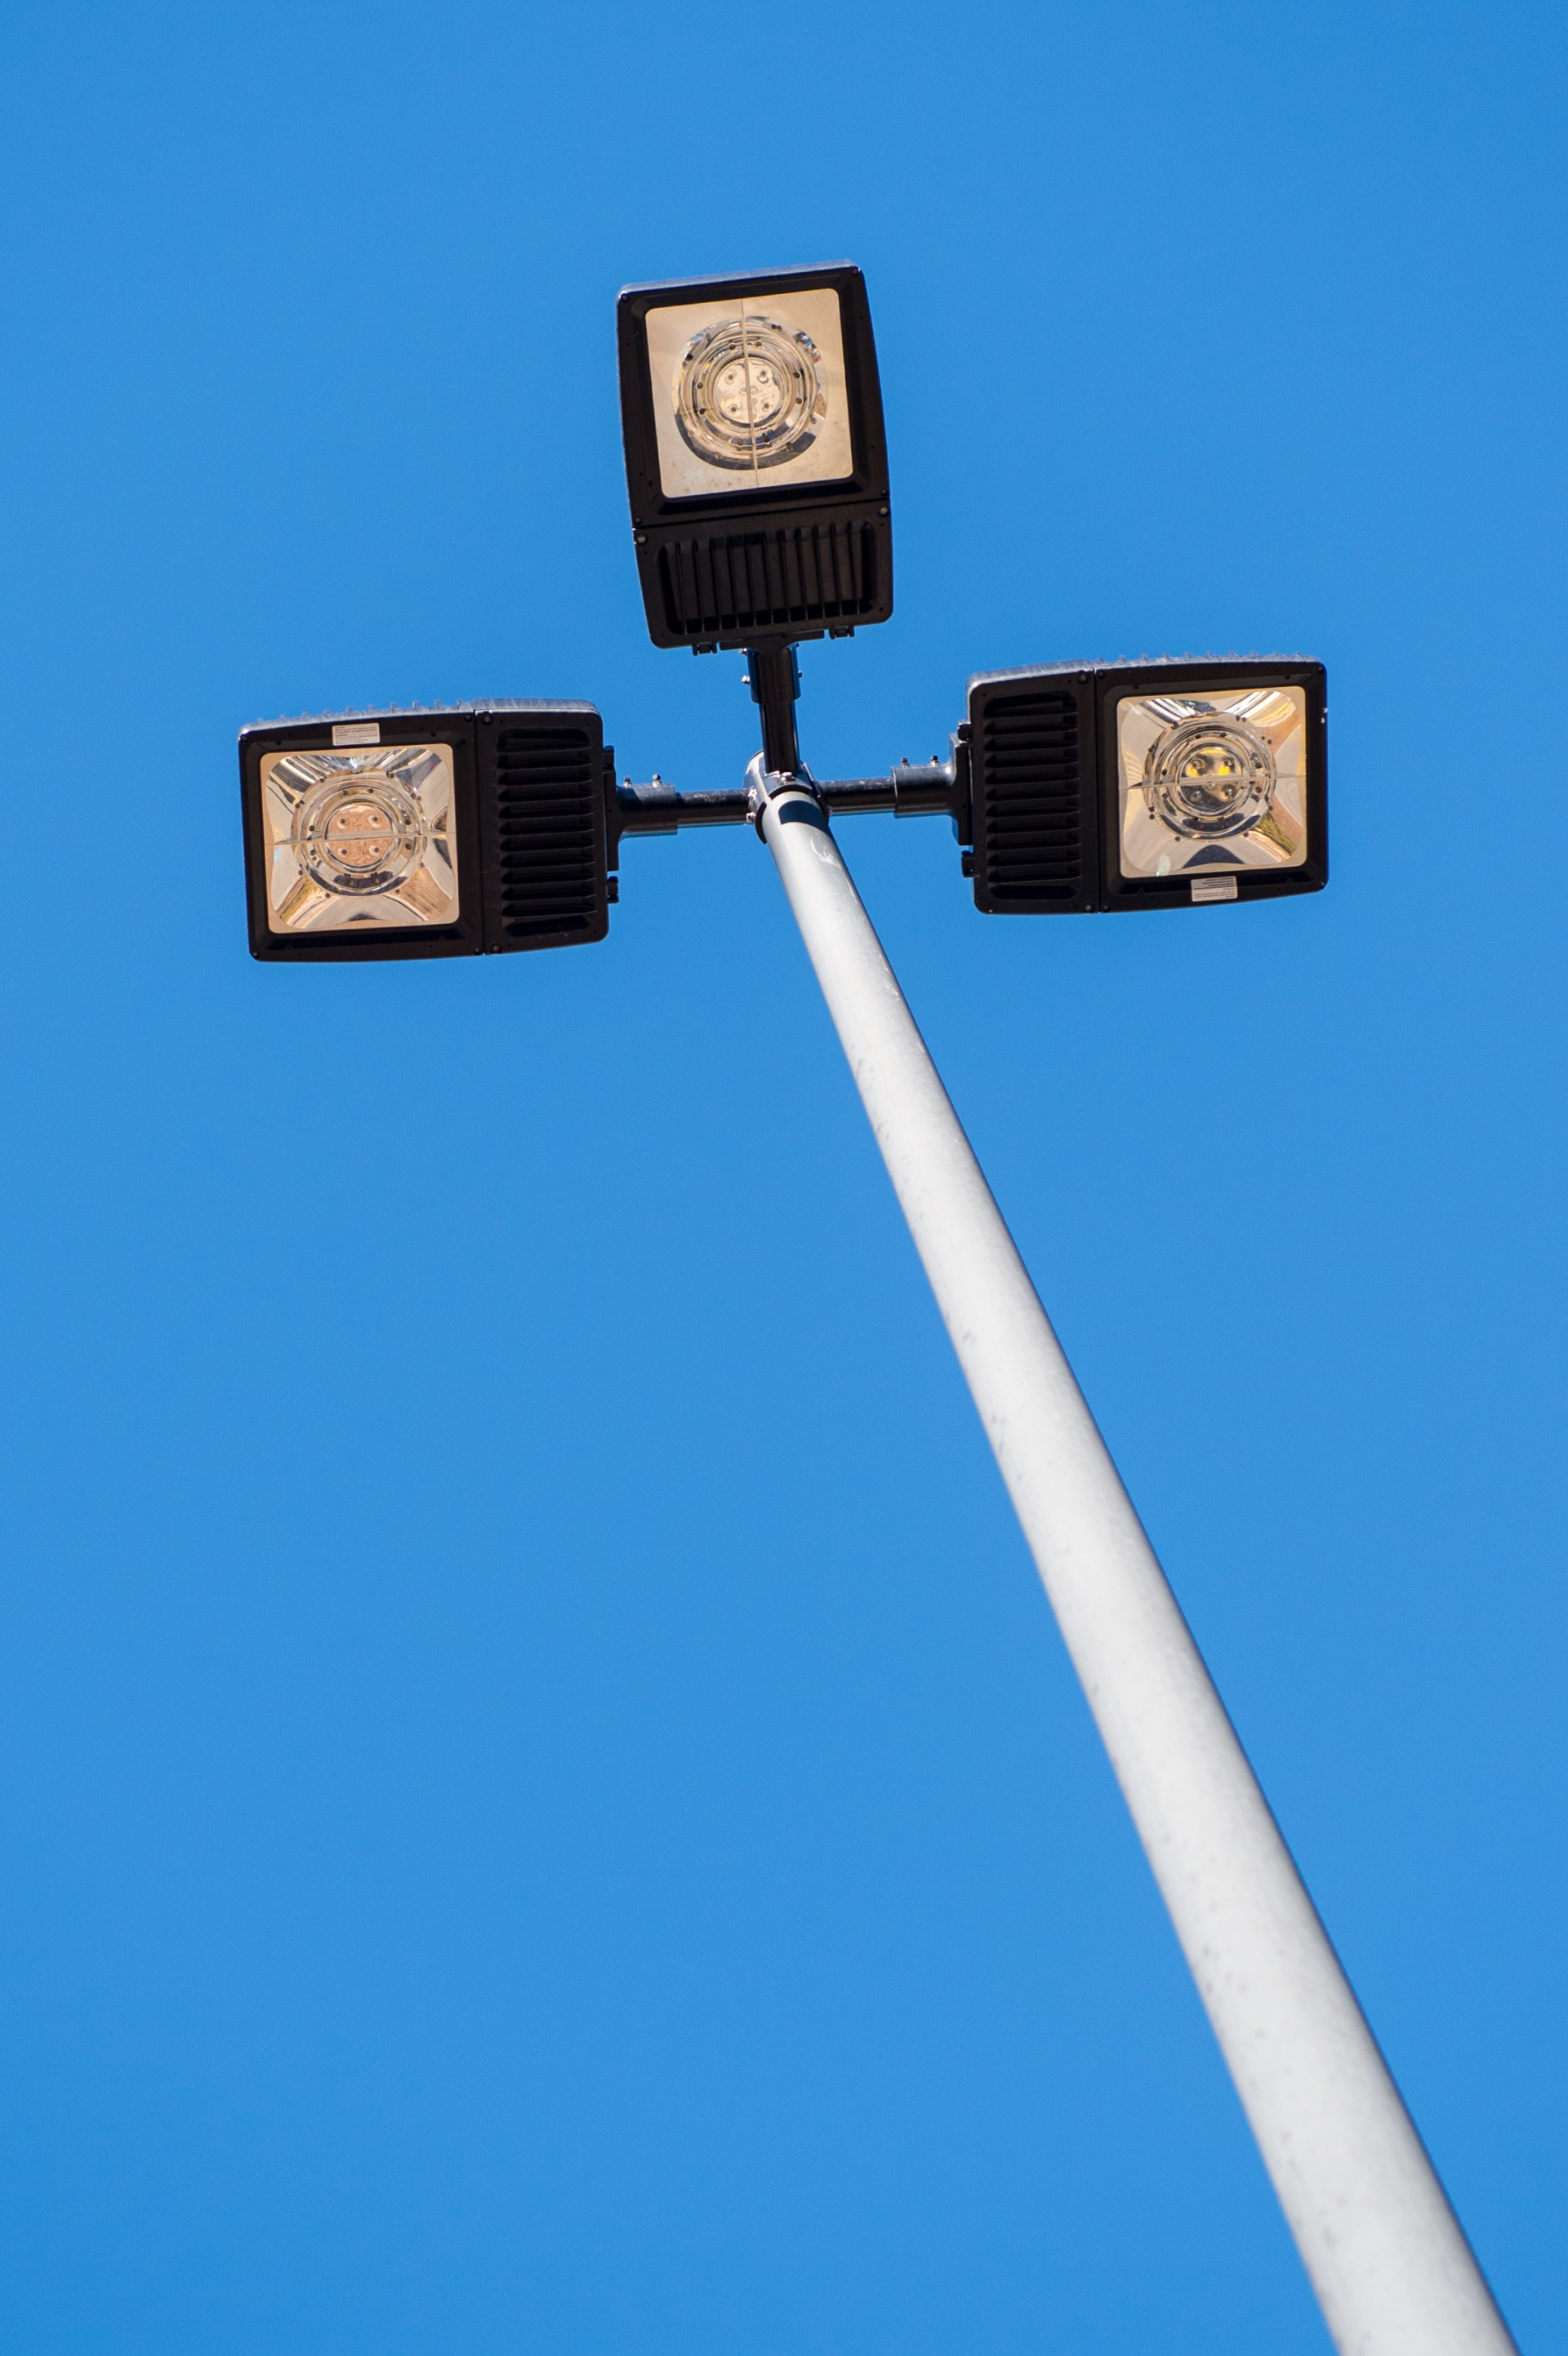 LED Exterior Wall or Pole Mounted Fixture